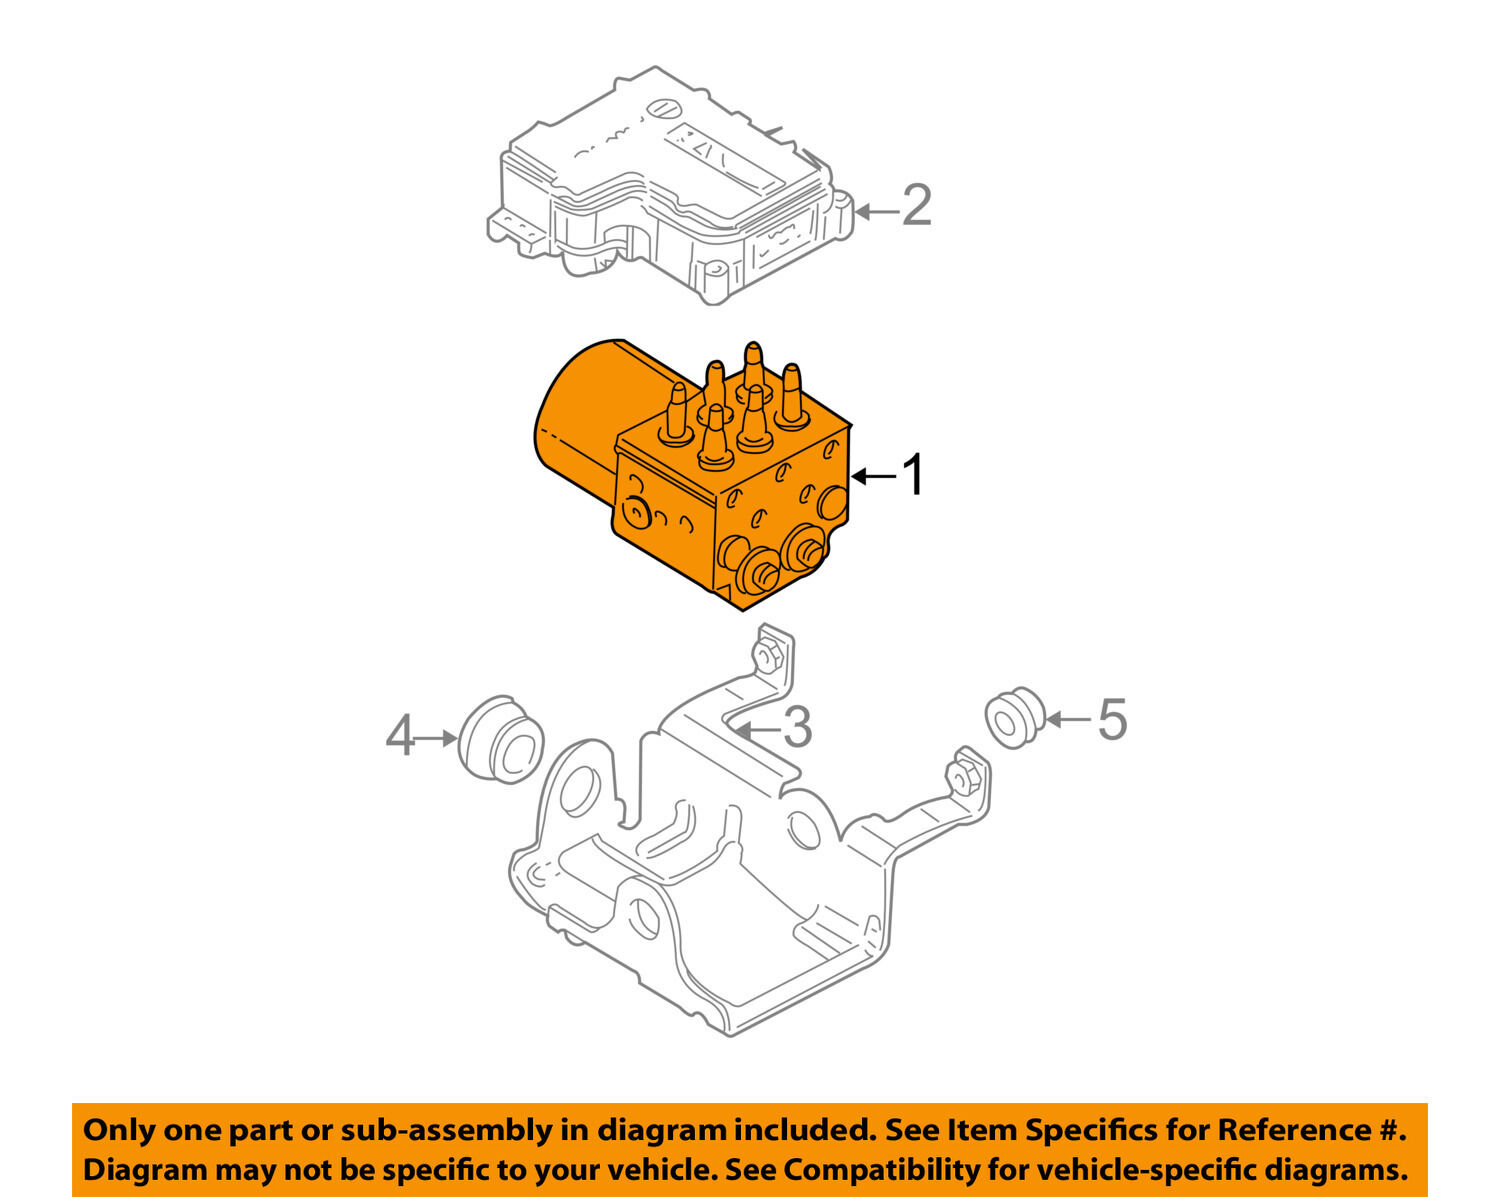 Gm Oem Abs Anti Lock Brakes Modulator Valve 19122463 45084 Diagram 1 Of 2only Available